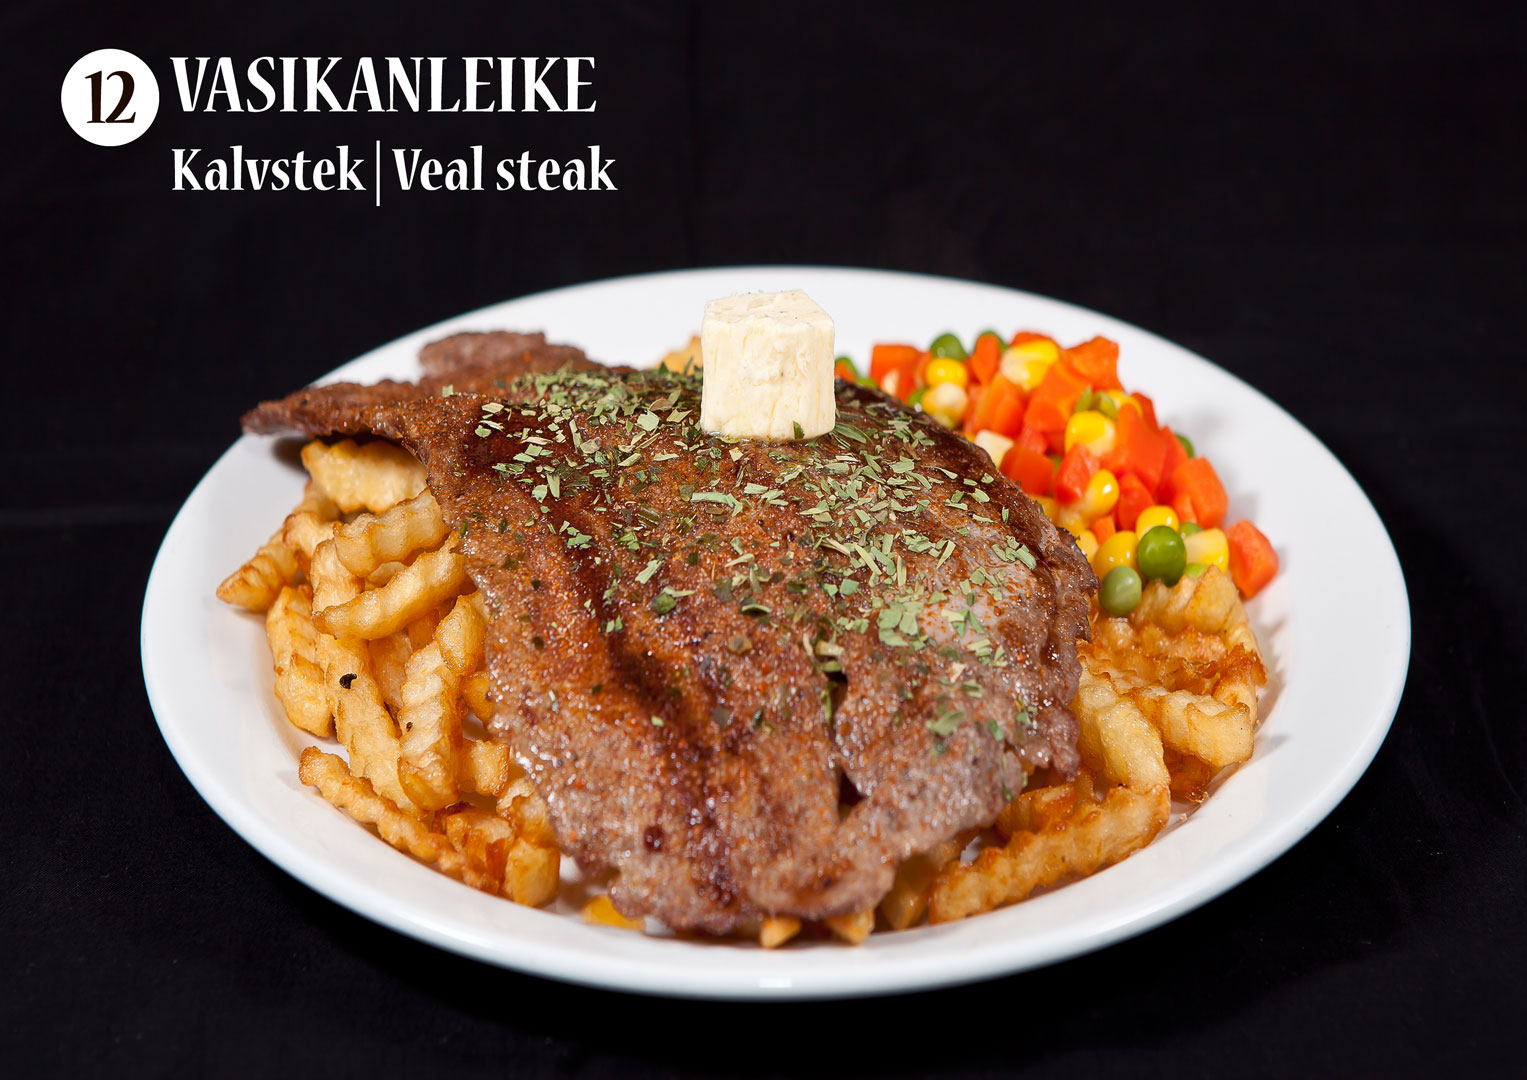 Vasikanleike | Kalvstek | Veal steak